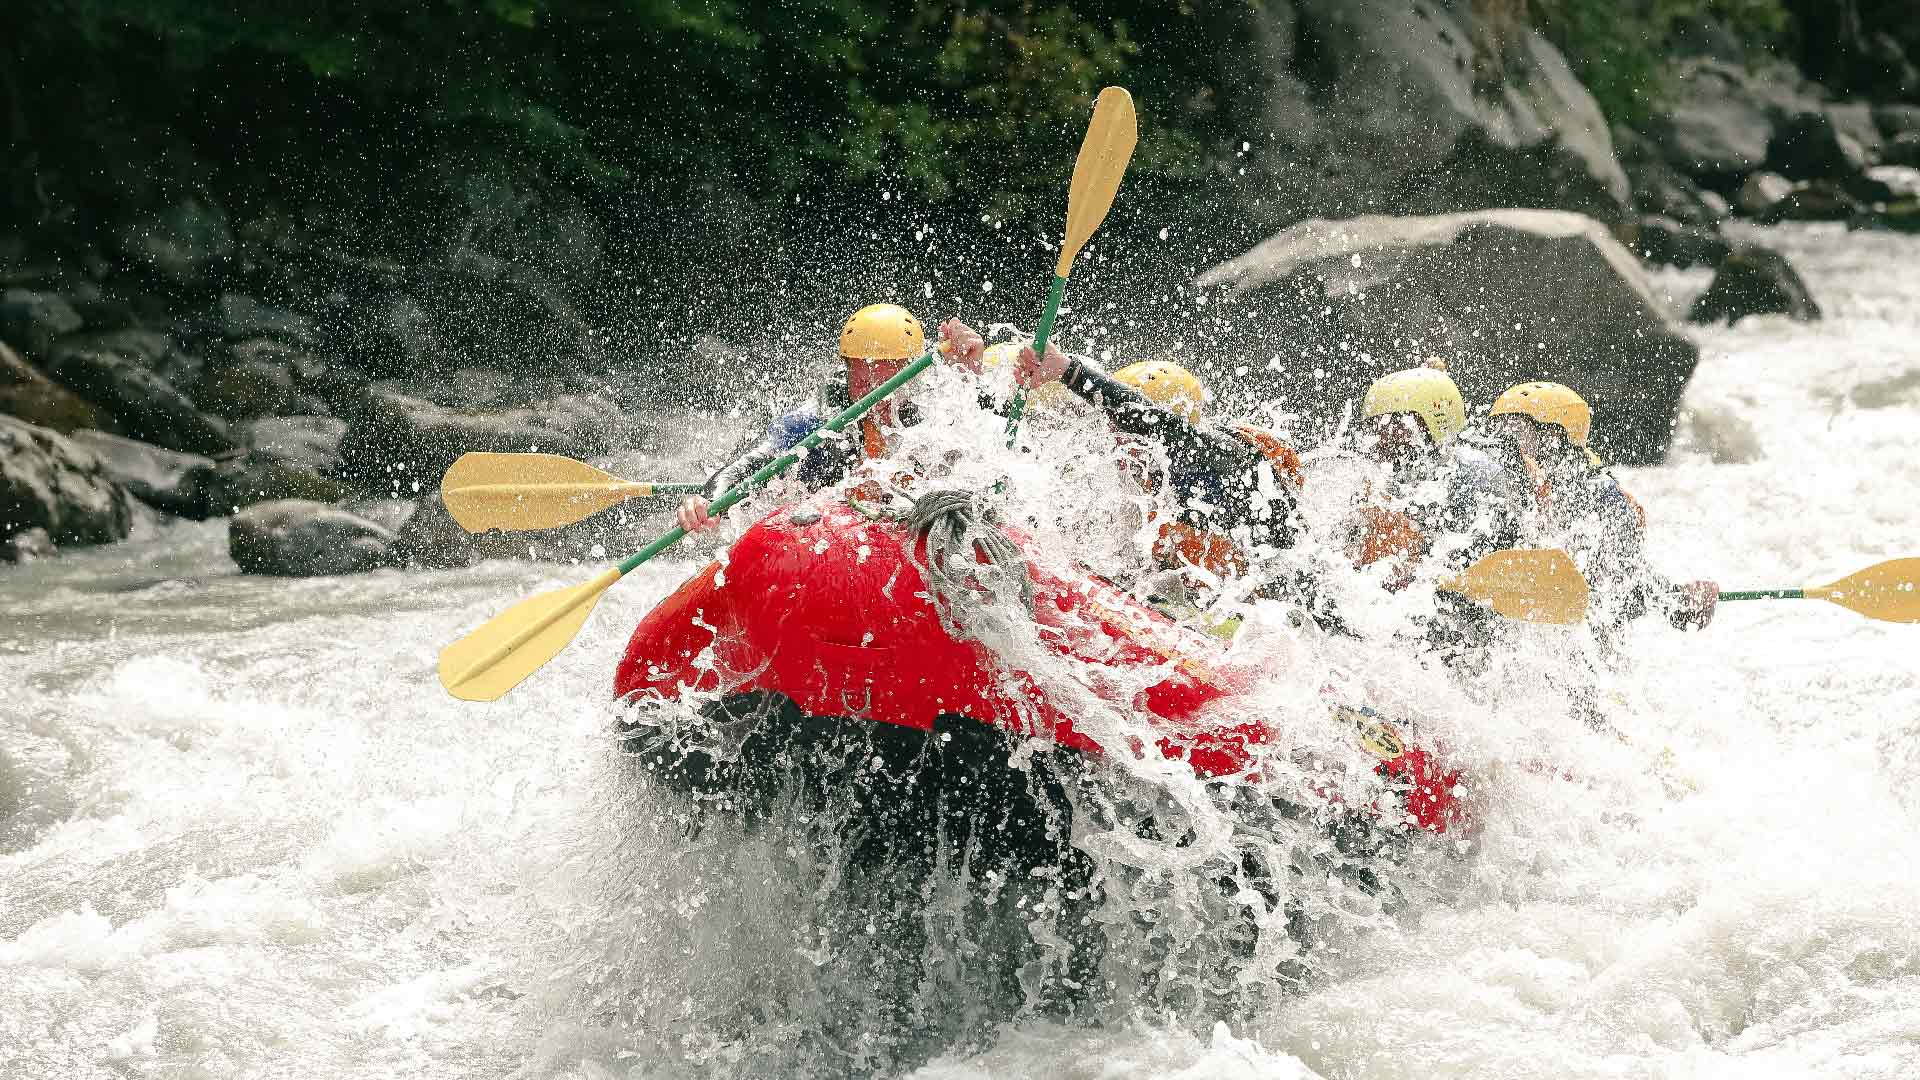 river-rafting-sommer-adventure-action-wasser